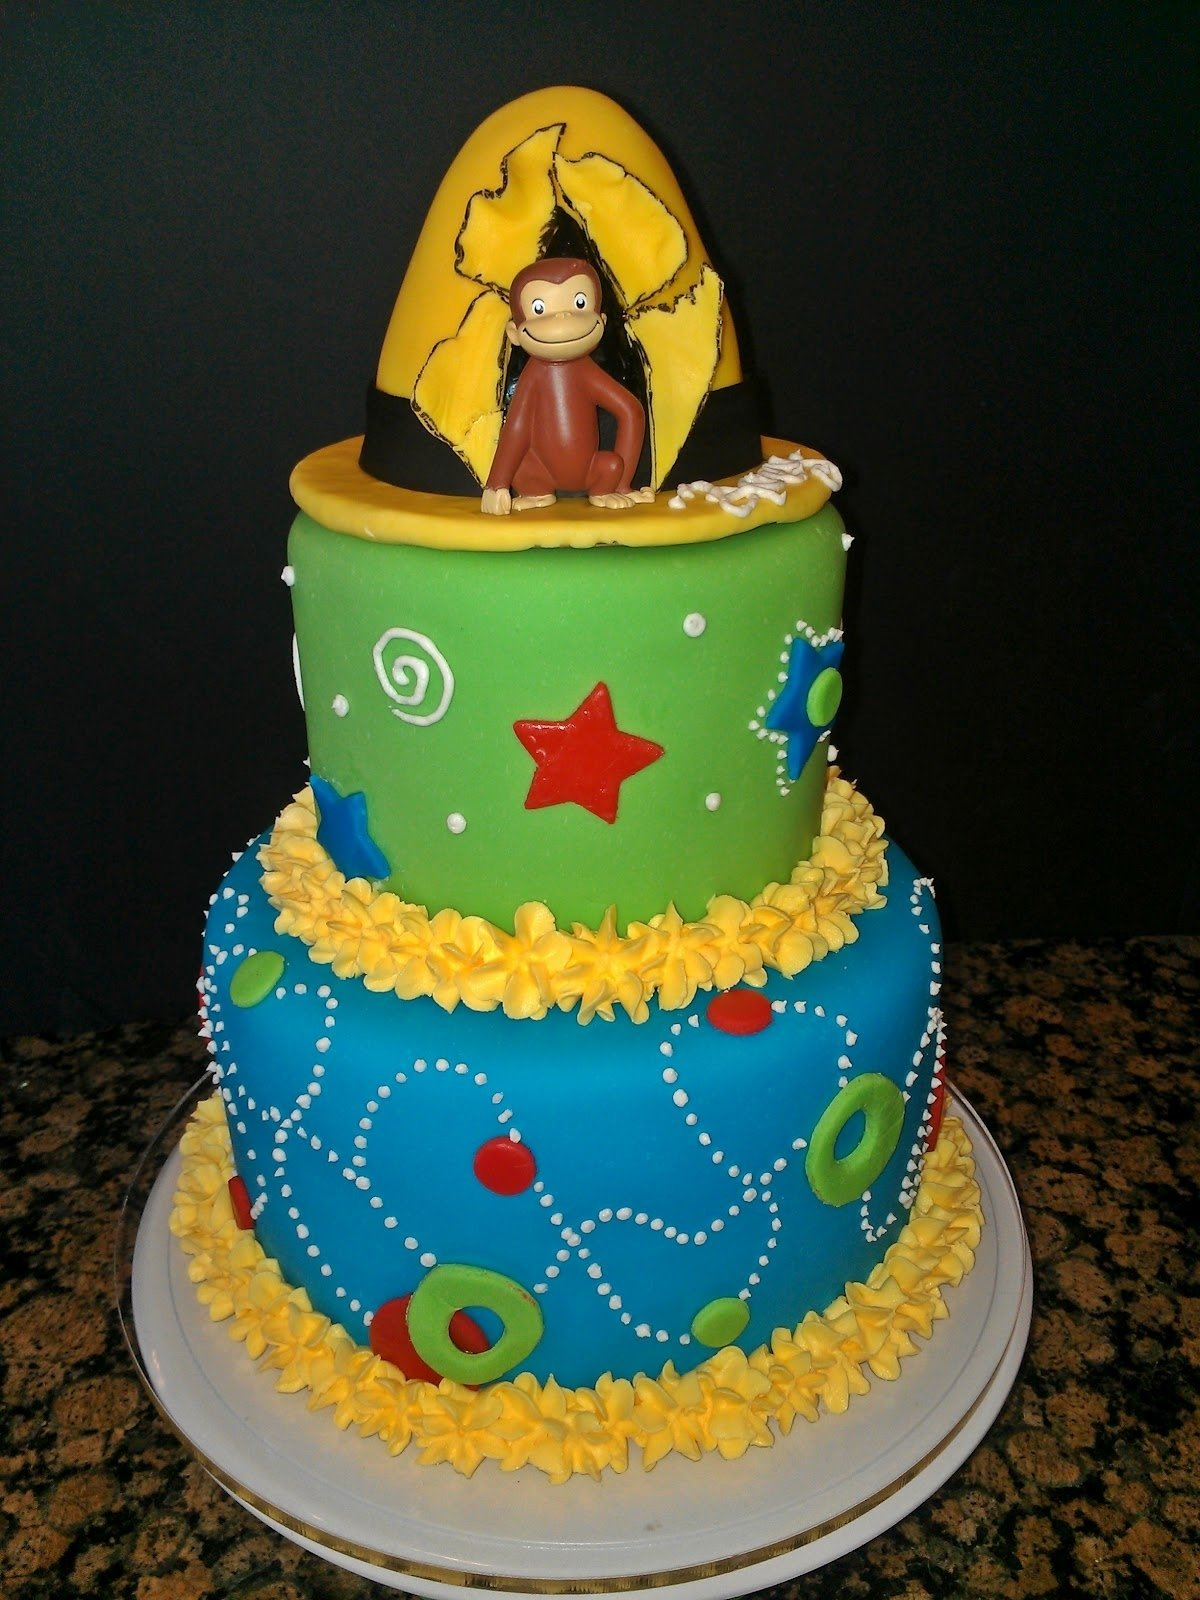 10 Famous Curious George Birthday Cake Ideas curious george cakes decoration ideas little birthday cakes 2021